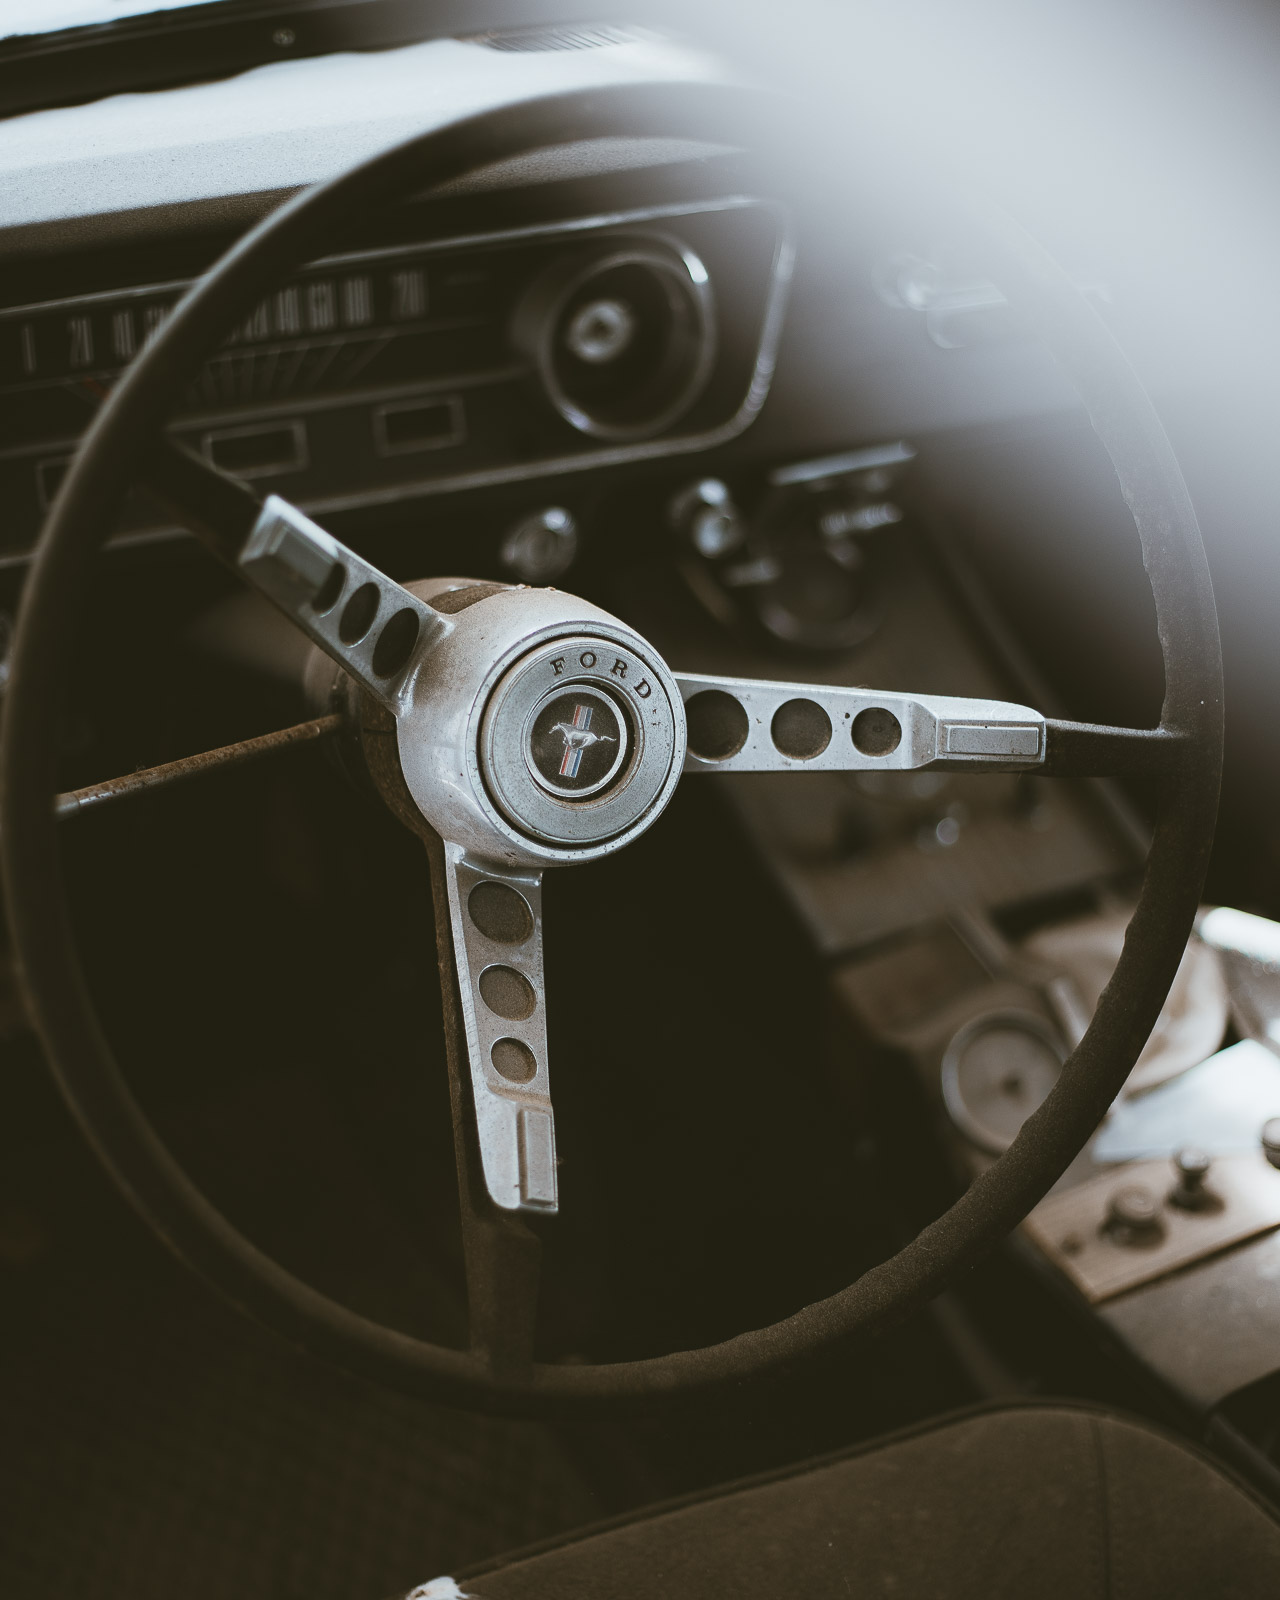 Details of a 1965 Ford Mustang